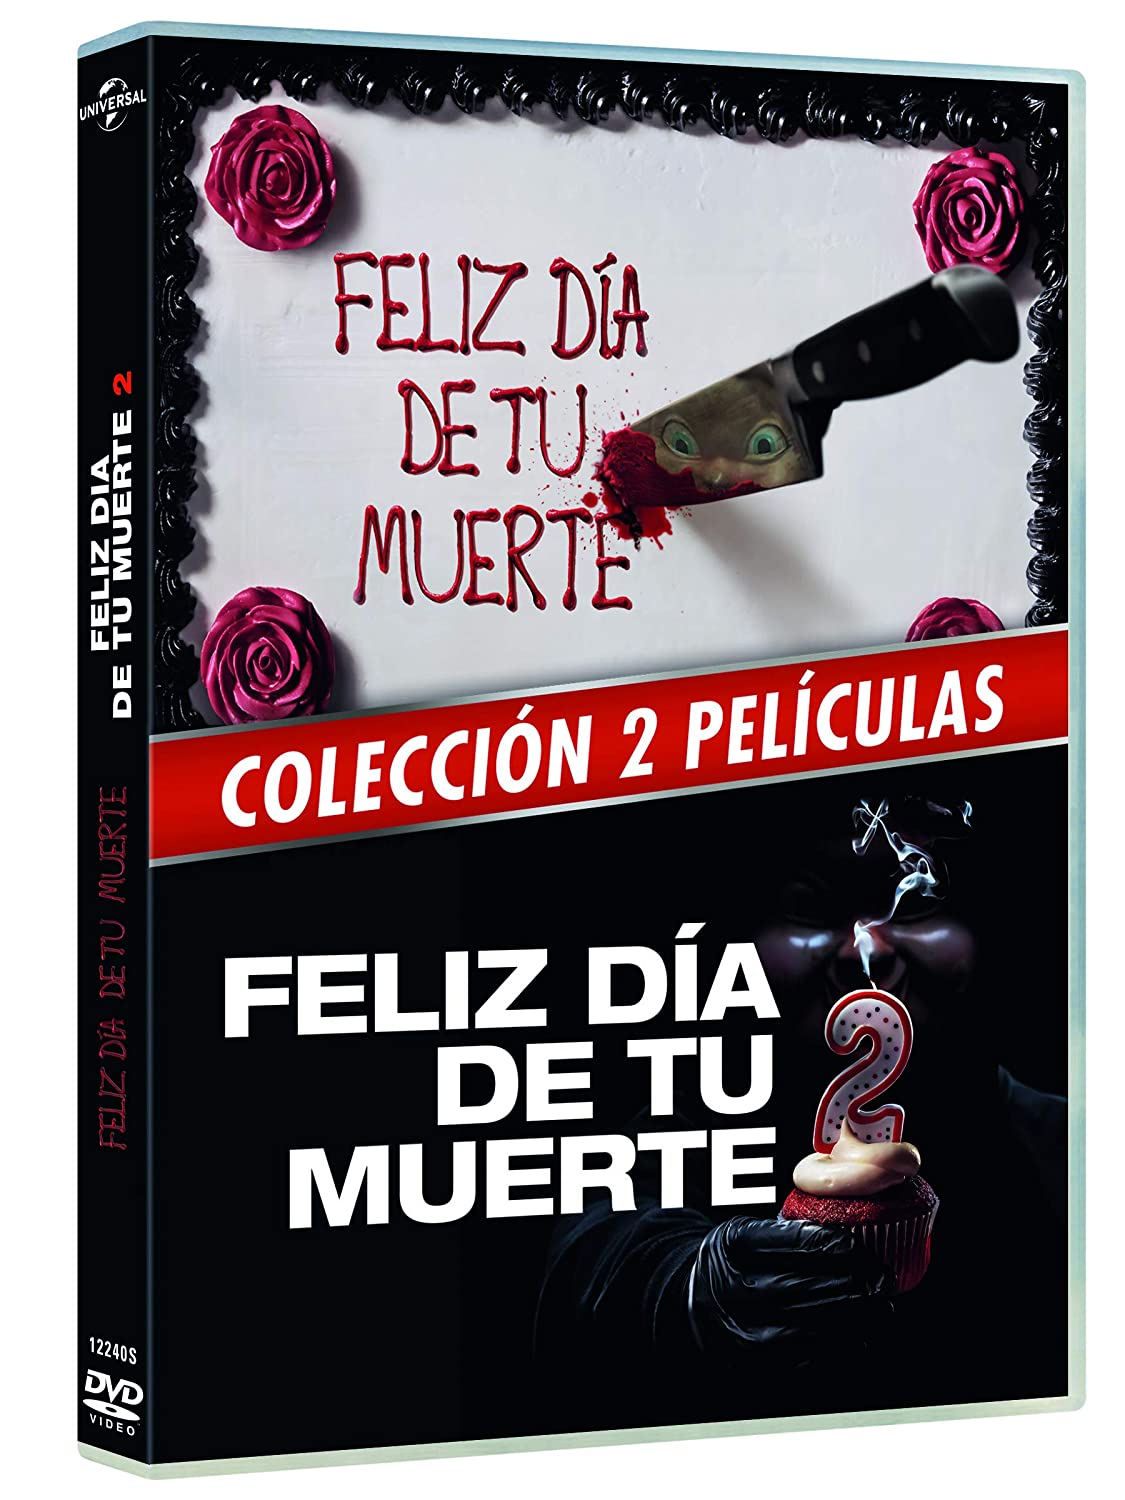 Pack 1+2: Feliz Día De Tu Muerte [DVD]: Amazon.es: Jessica Rothe, Israel Broussard, Phi Vu , Christopher Landon, Jessica Rothe, Israel Broussard, Blumhouse Productions: Cine y Series TV